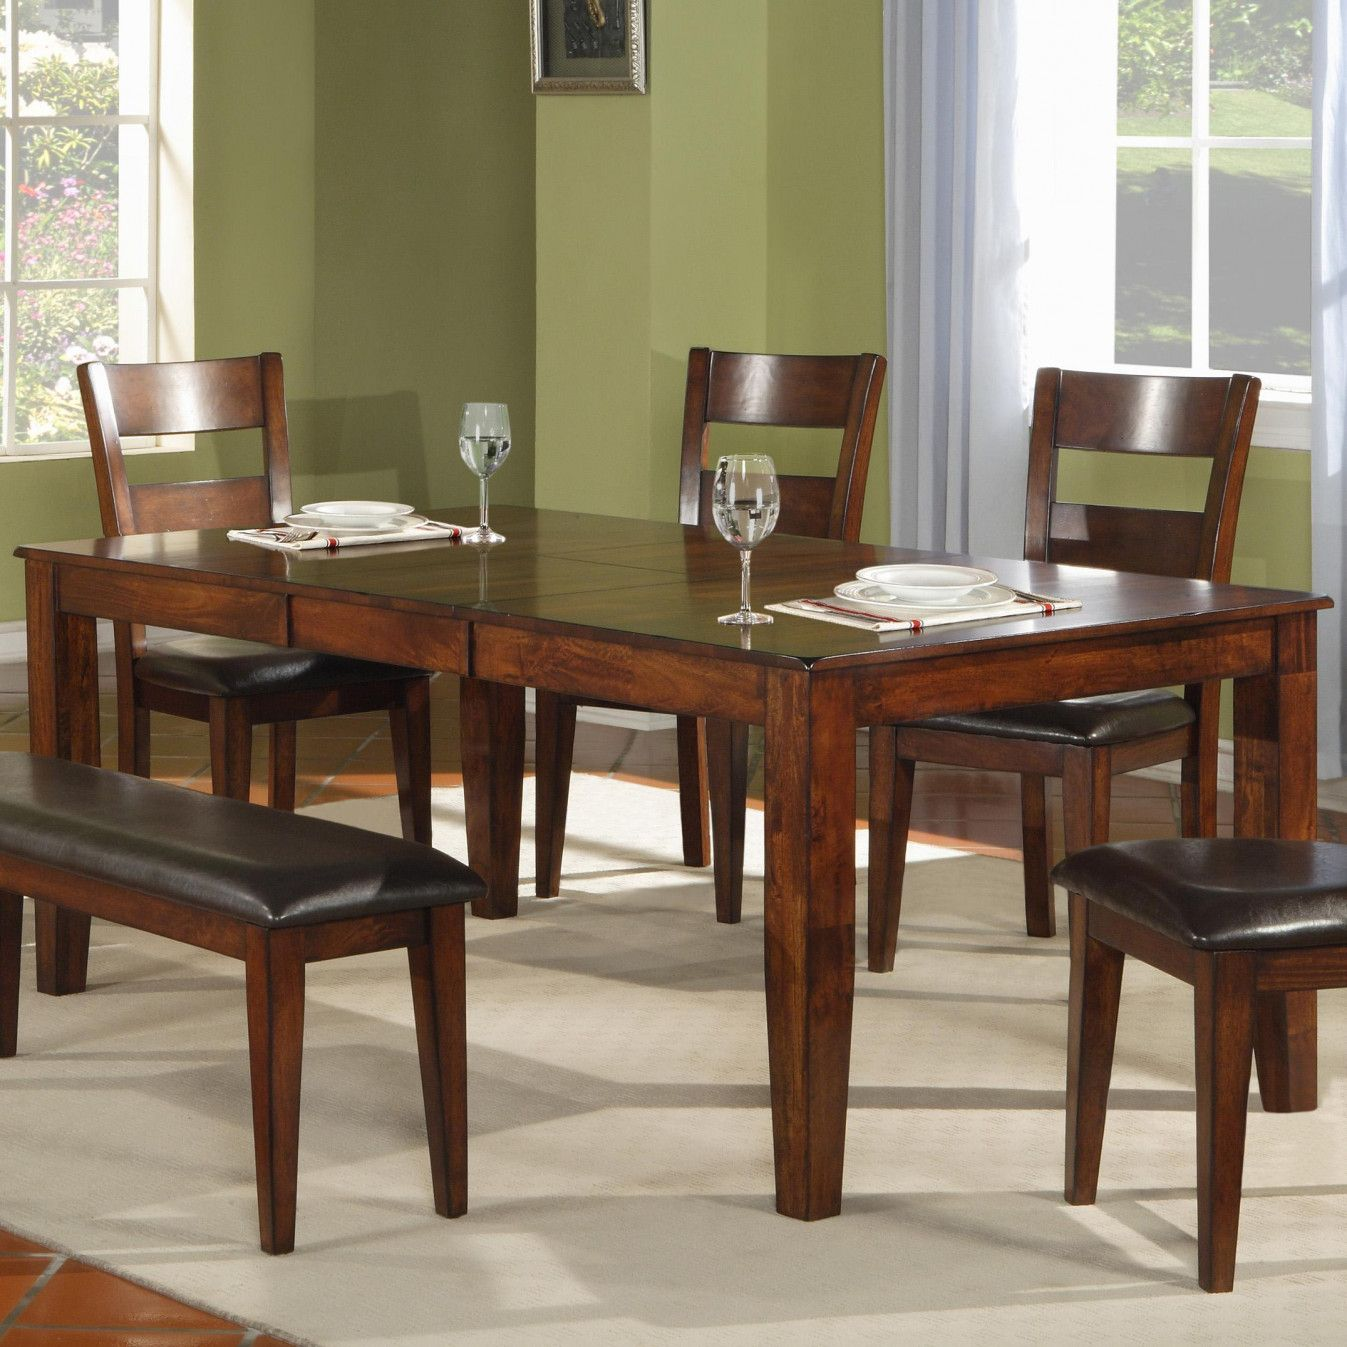 99 Mango Wood Dining Table and Chairs